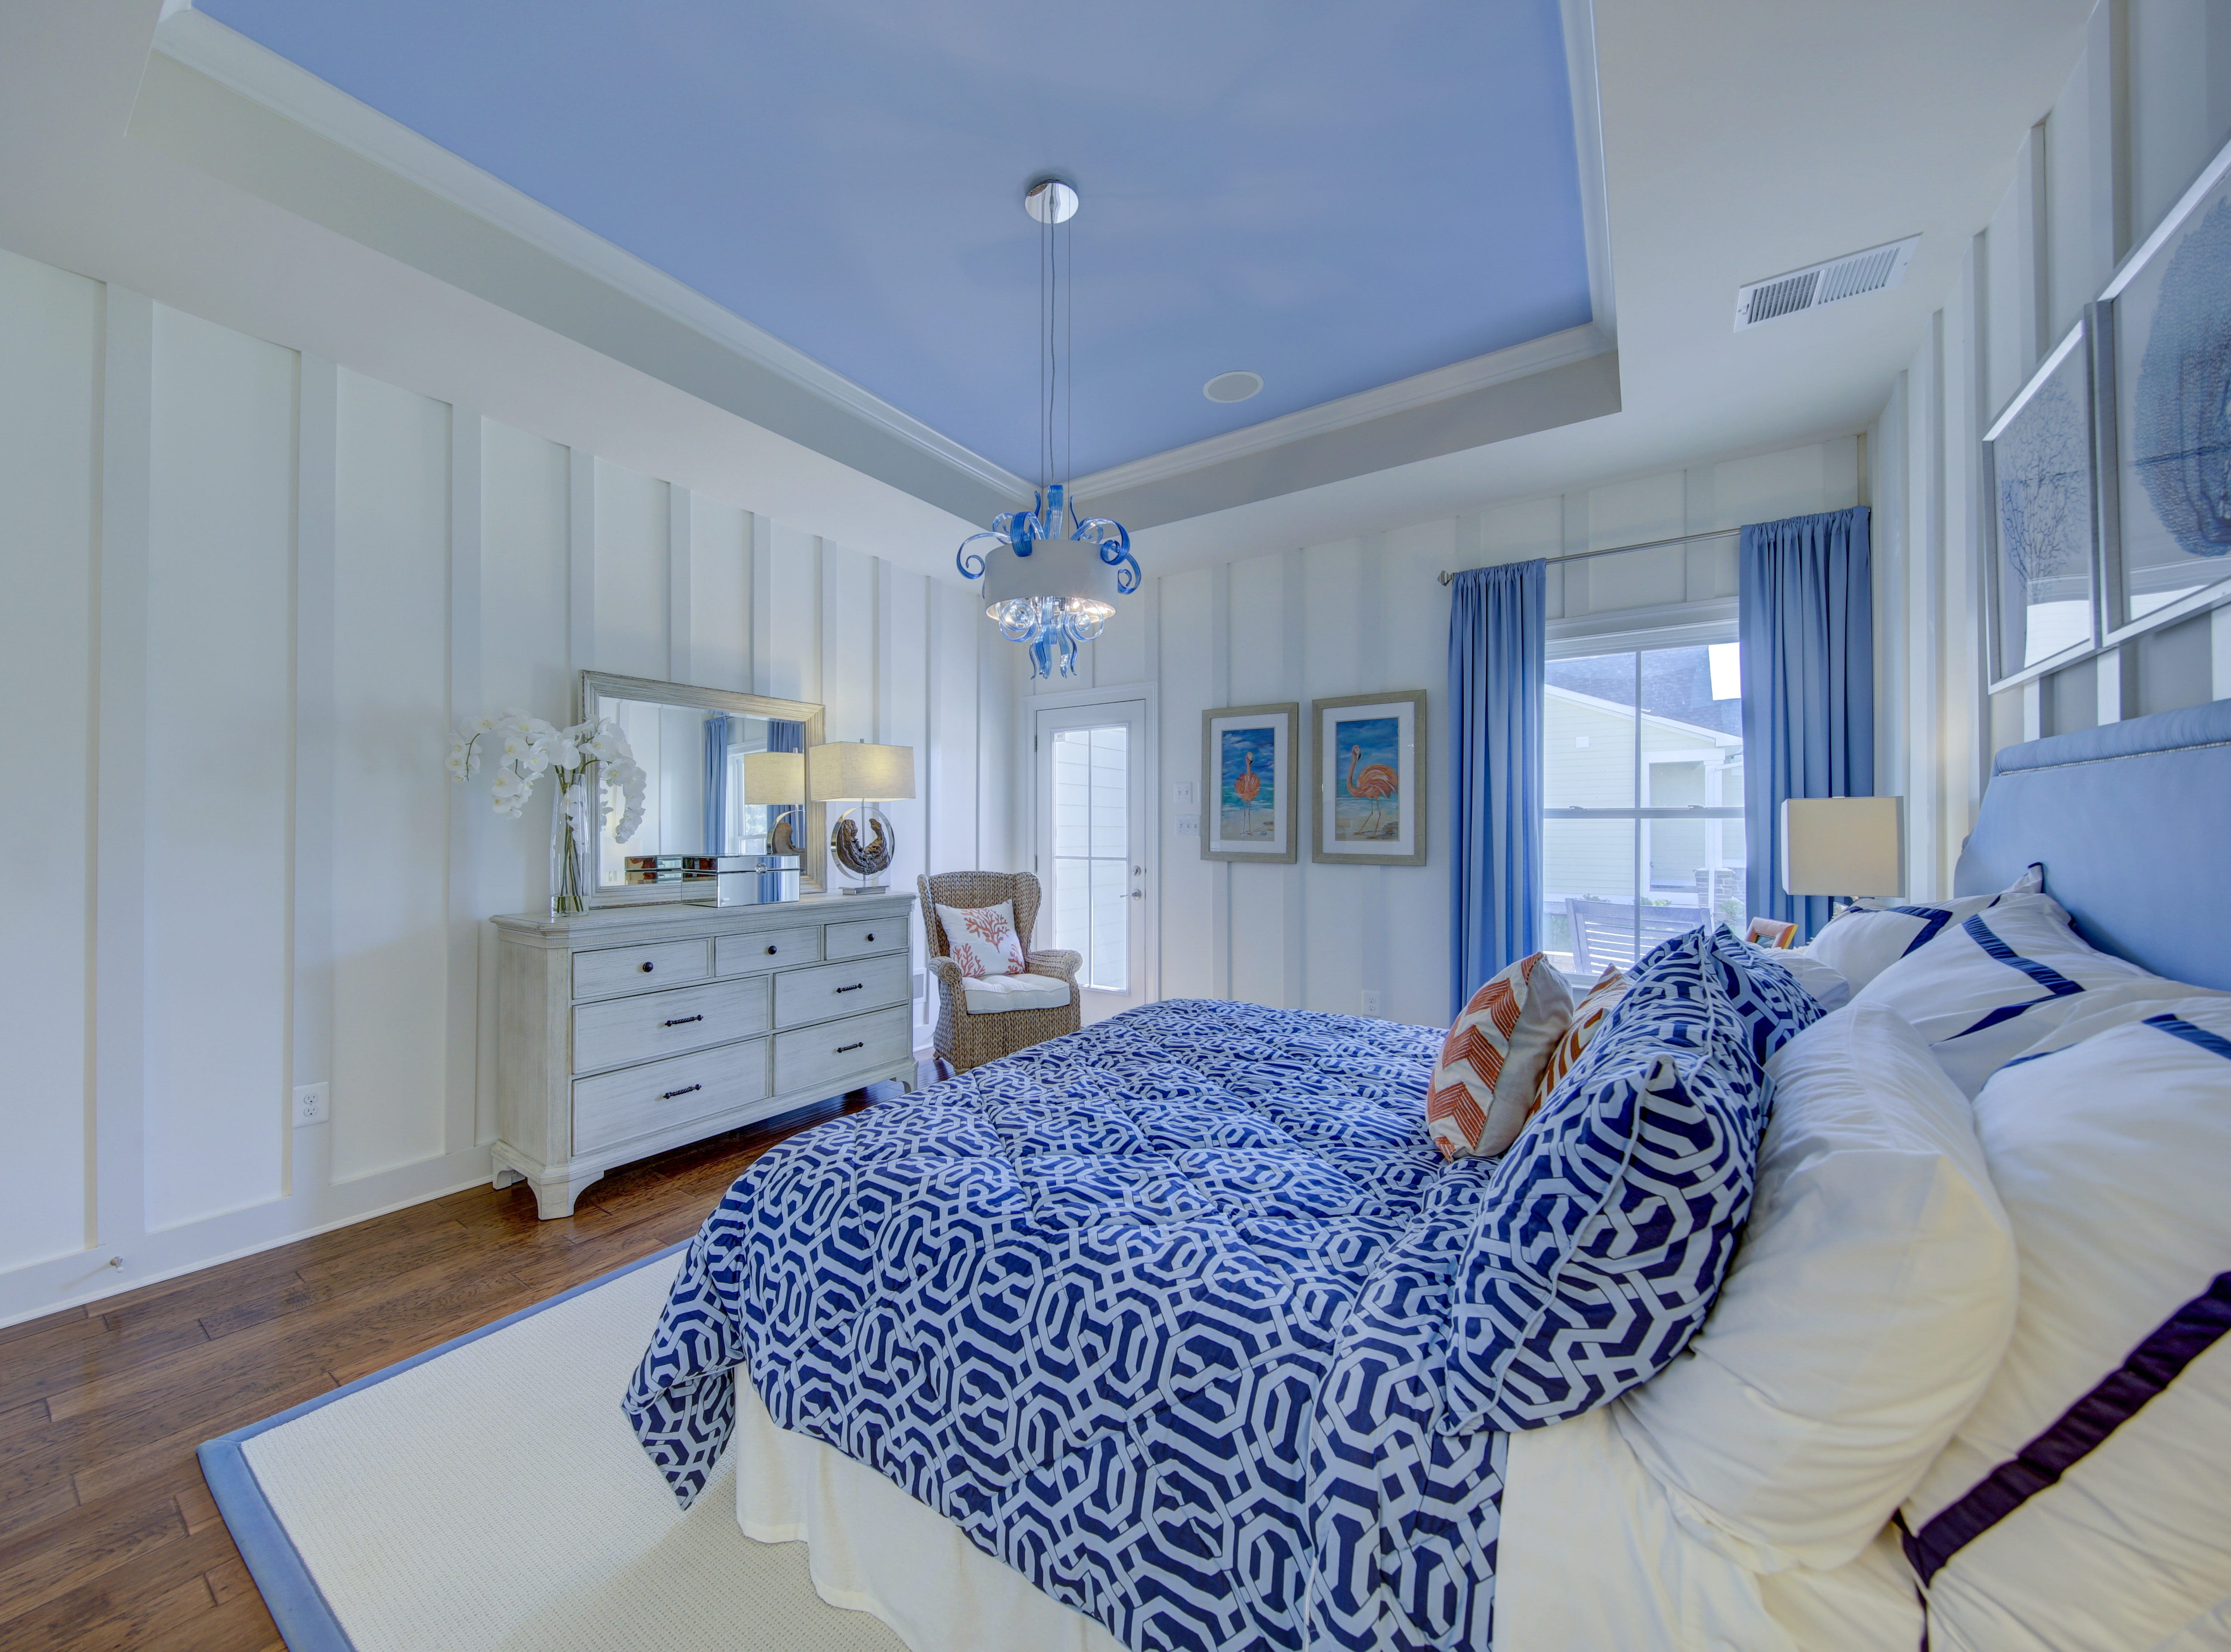 The first-floor master bedroom of the model home in The Overlook at Selbyville has a tray ceiling and custom moldings on the walls.